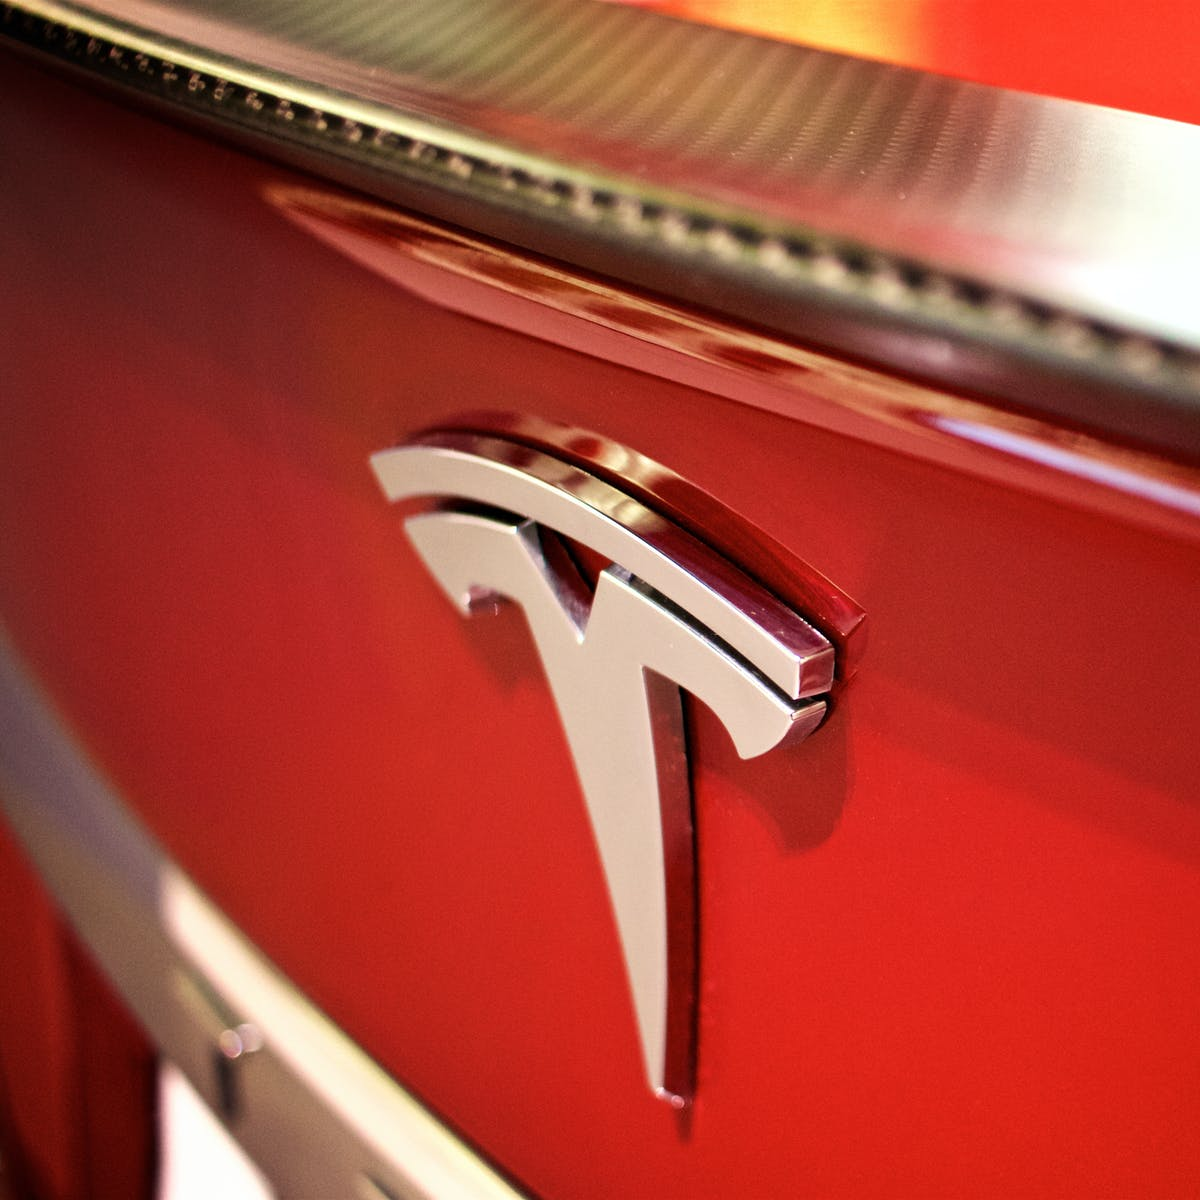 Tesla Pickup Truck: Elon Musk Says Higher Priority Than Semi and Roadster